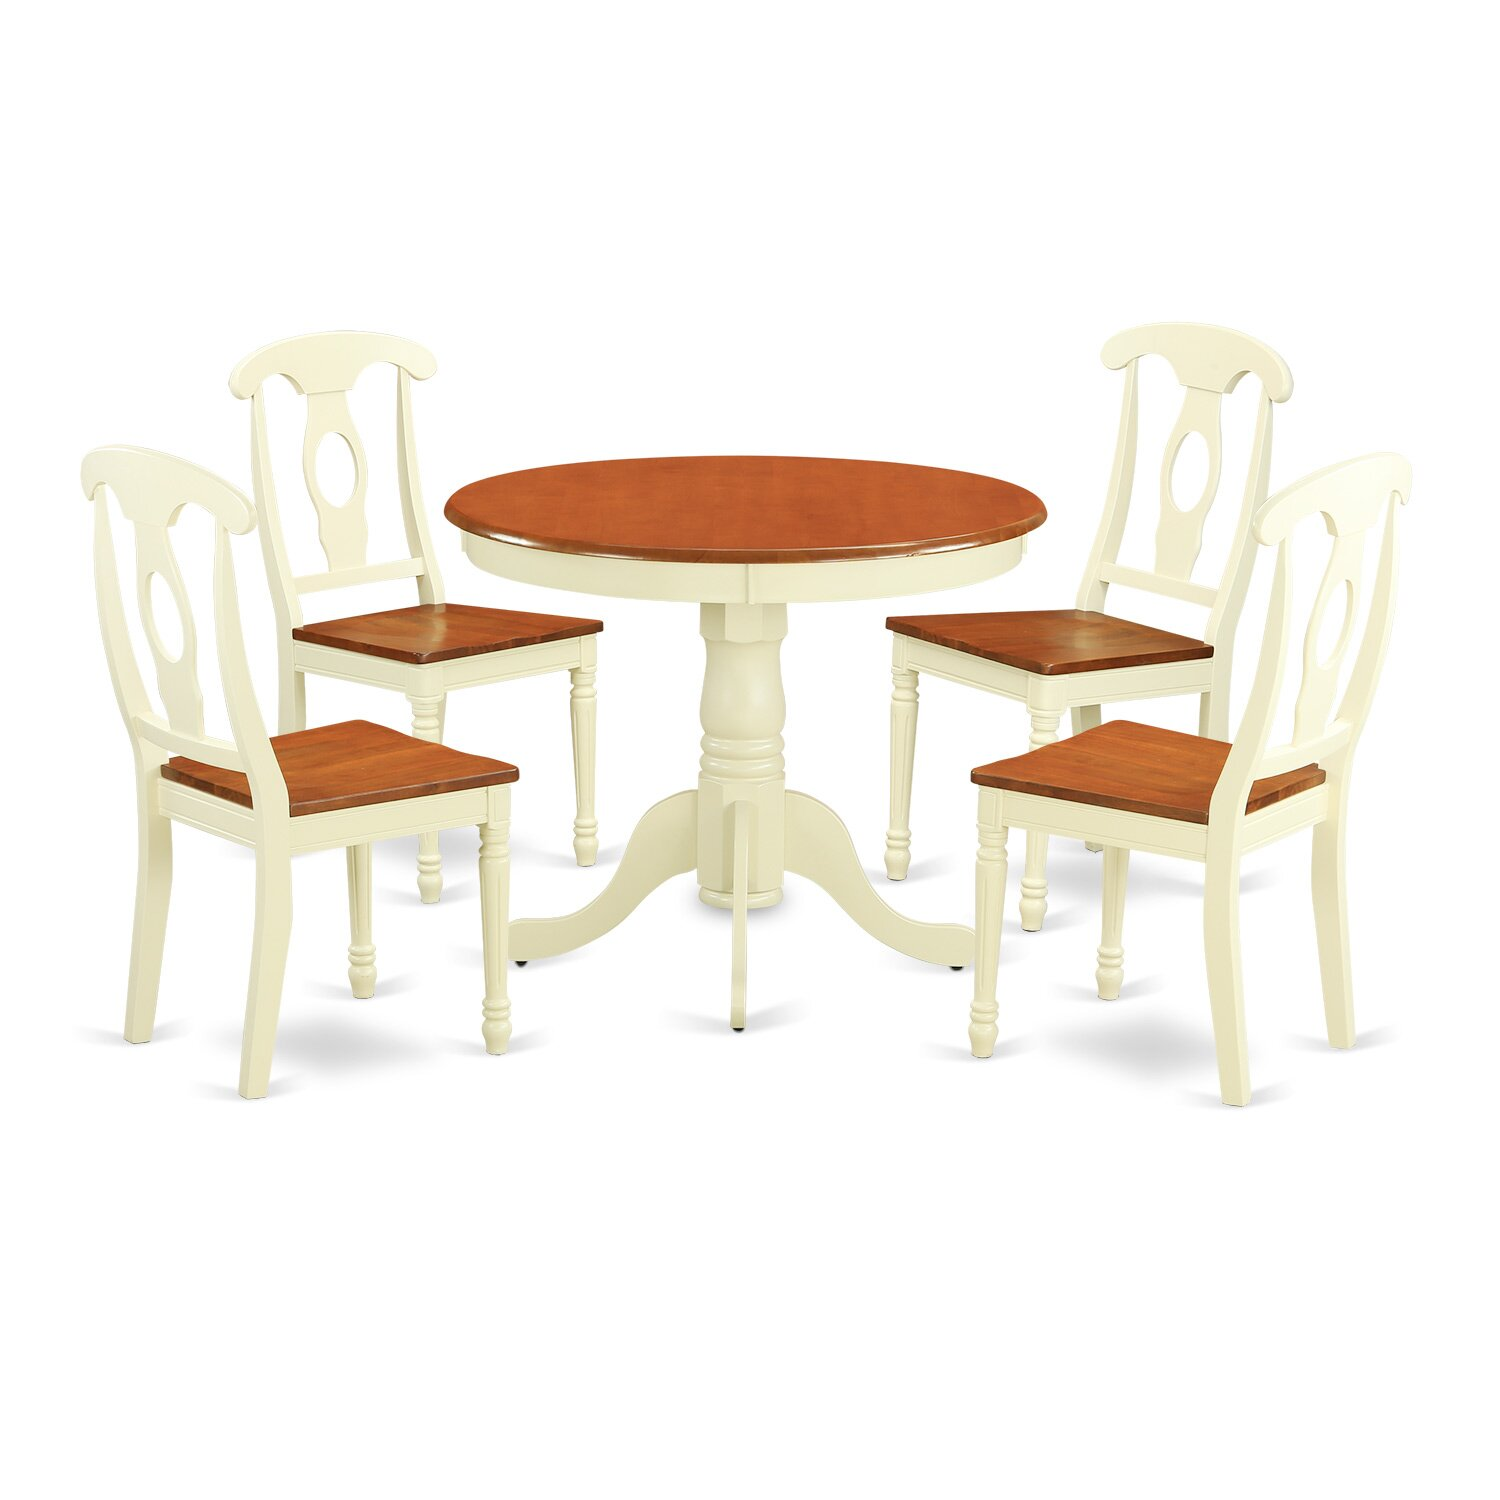 East west 5 piece dining set wayfair for Furniture kitchen set